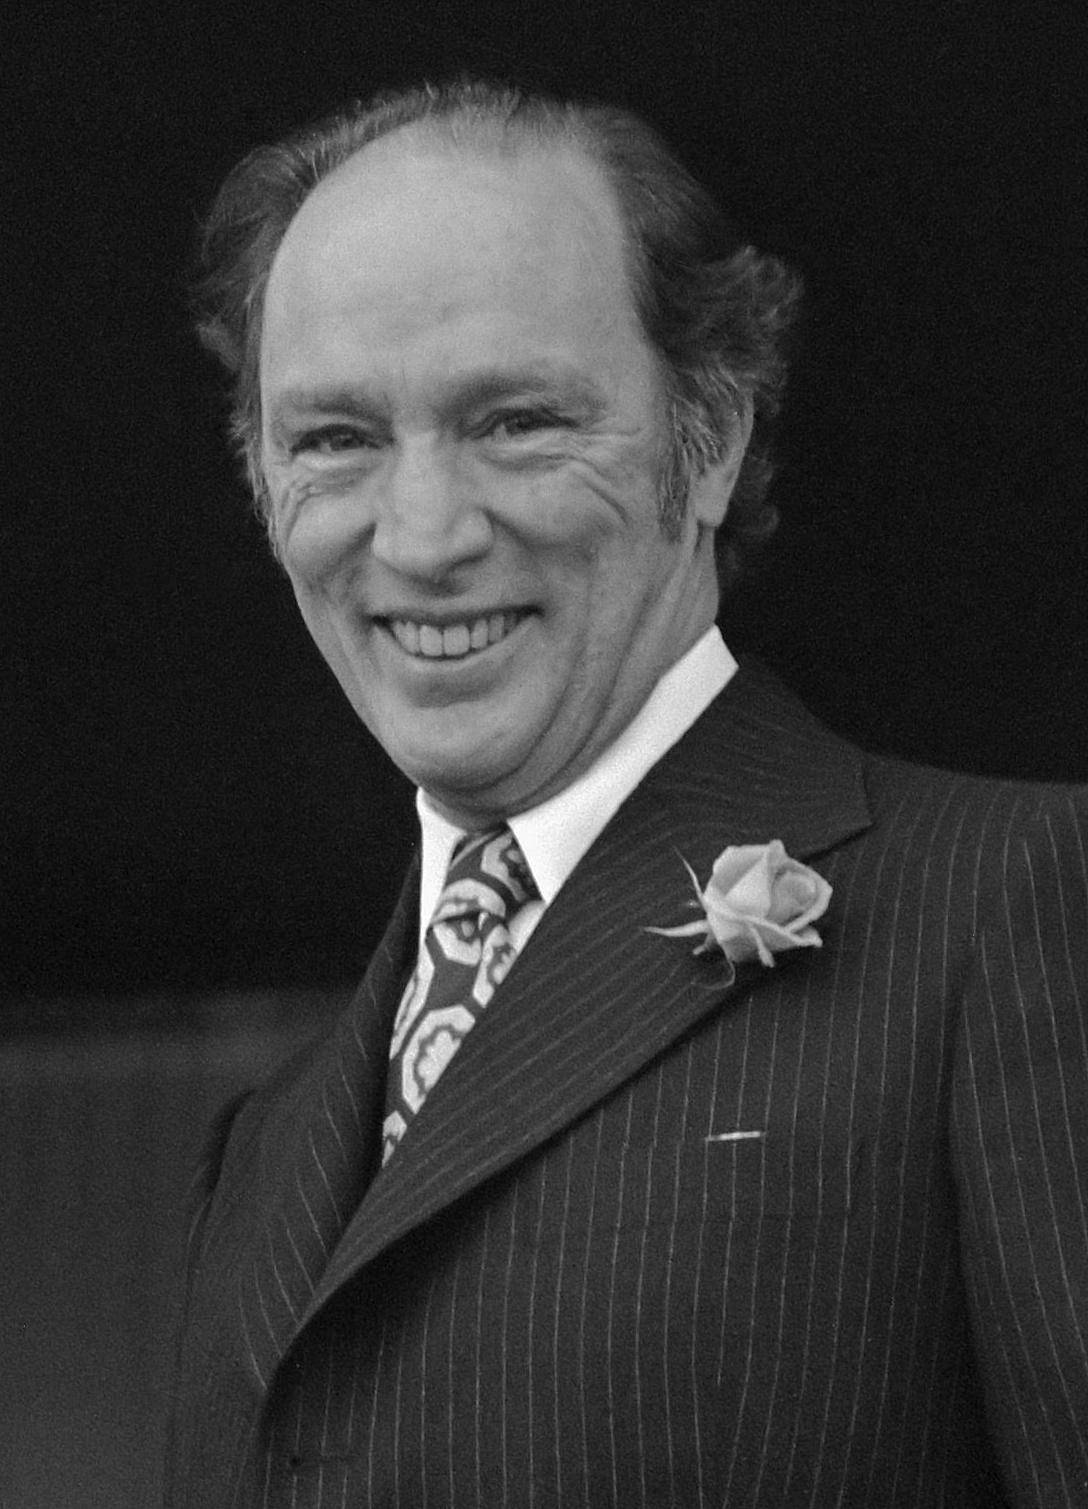 pierre trudeau and his vision of a just society in canada Trudeau espoused participatory democracy as a means of making canada a just society his pierre trudeau pierre canada this was not the vision of.